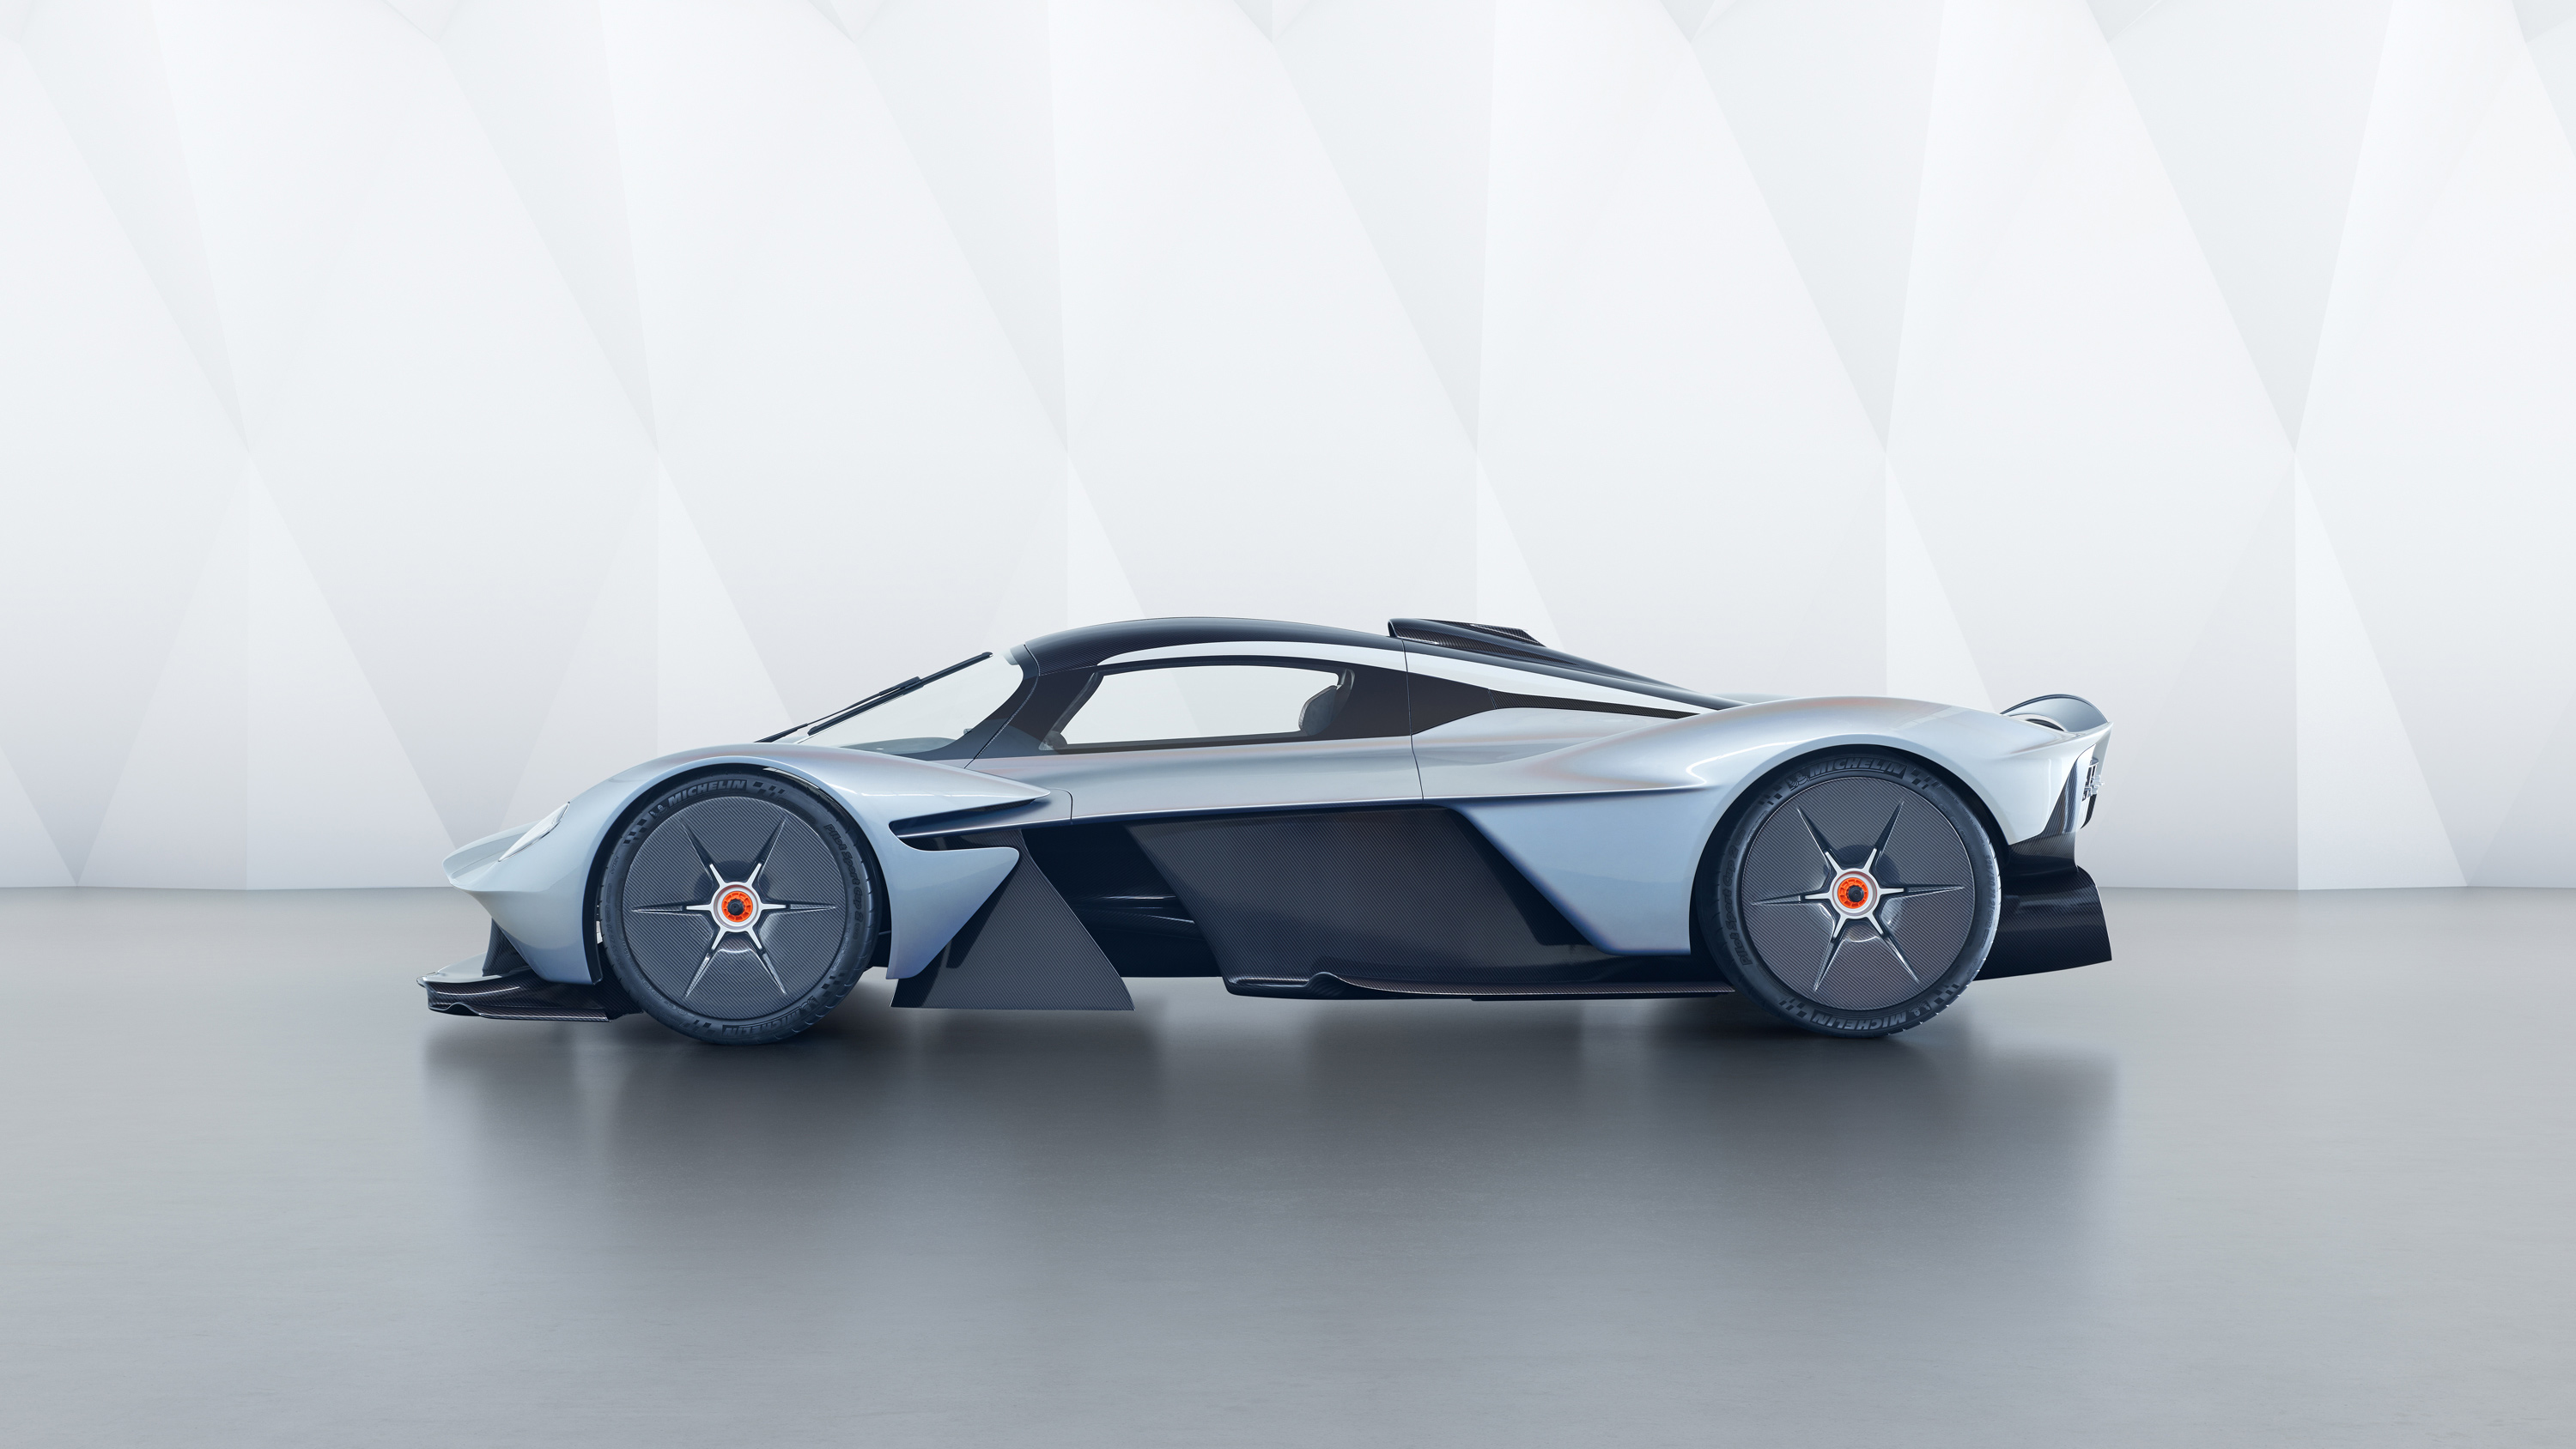 Maserati Wallpaper Iphone X 2018 Aston Martin Valkyrie 3 Wallpaper Hd Car Wallpapers